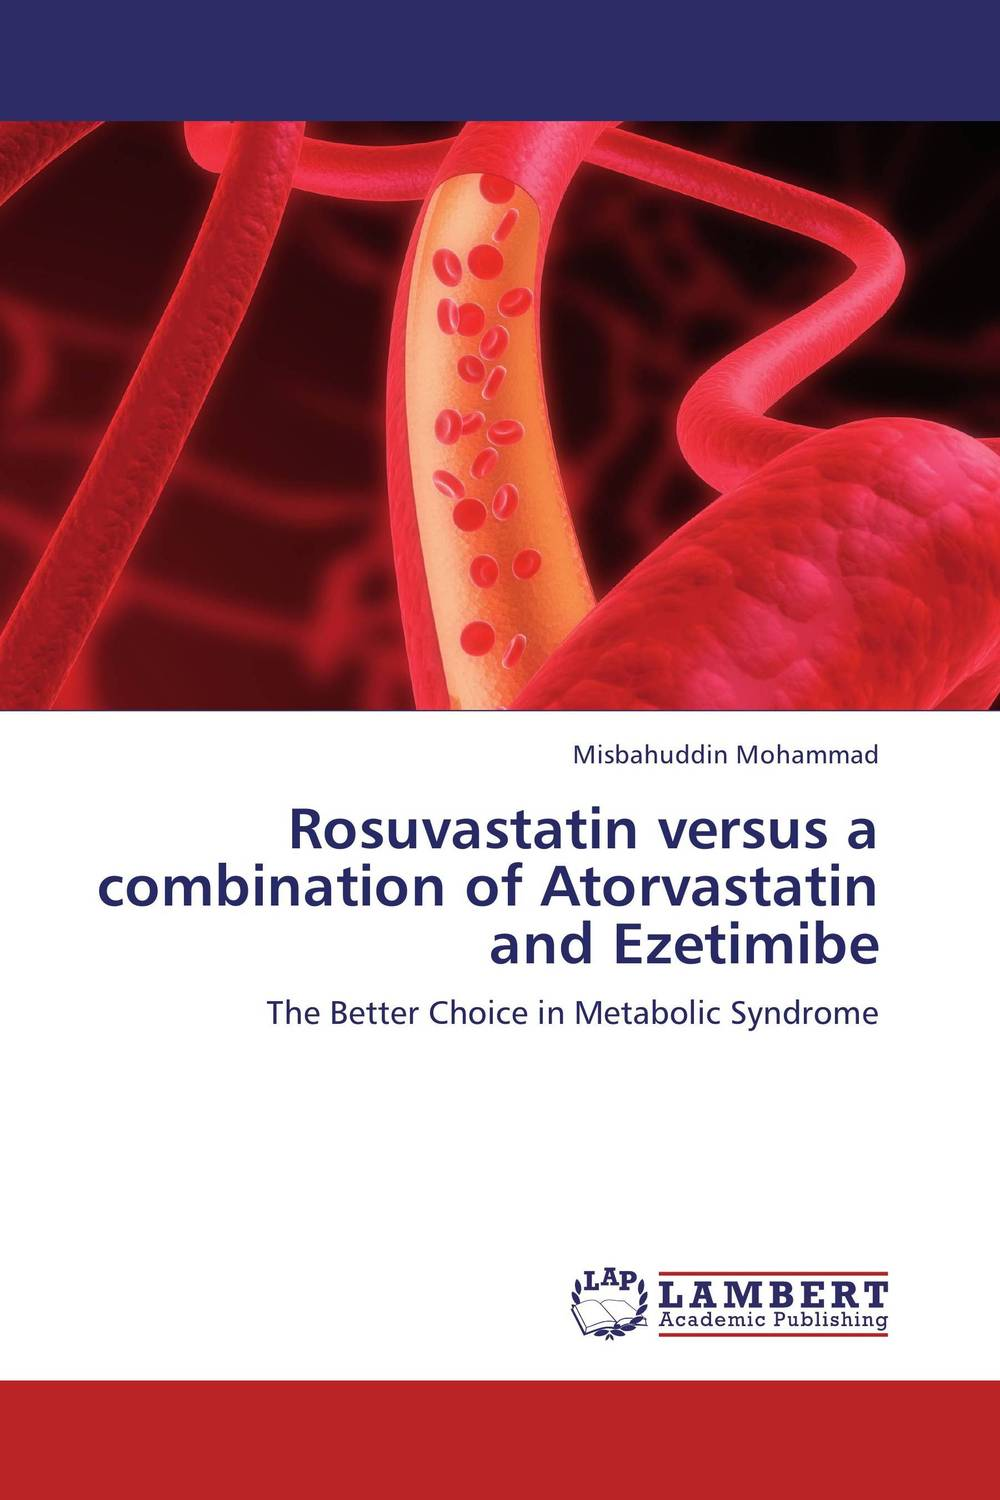 Rosuvastatin versus a combination of Atorvastatin and Ezetimibe rosuvastatin versus a combination of atorvastatin and ezetimibe